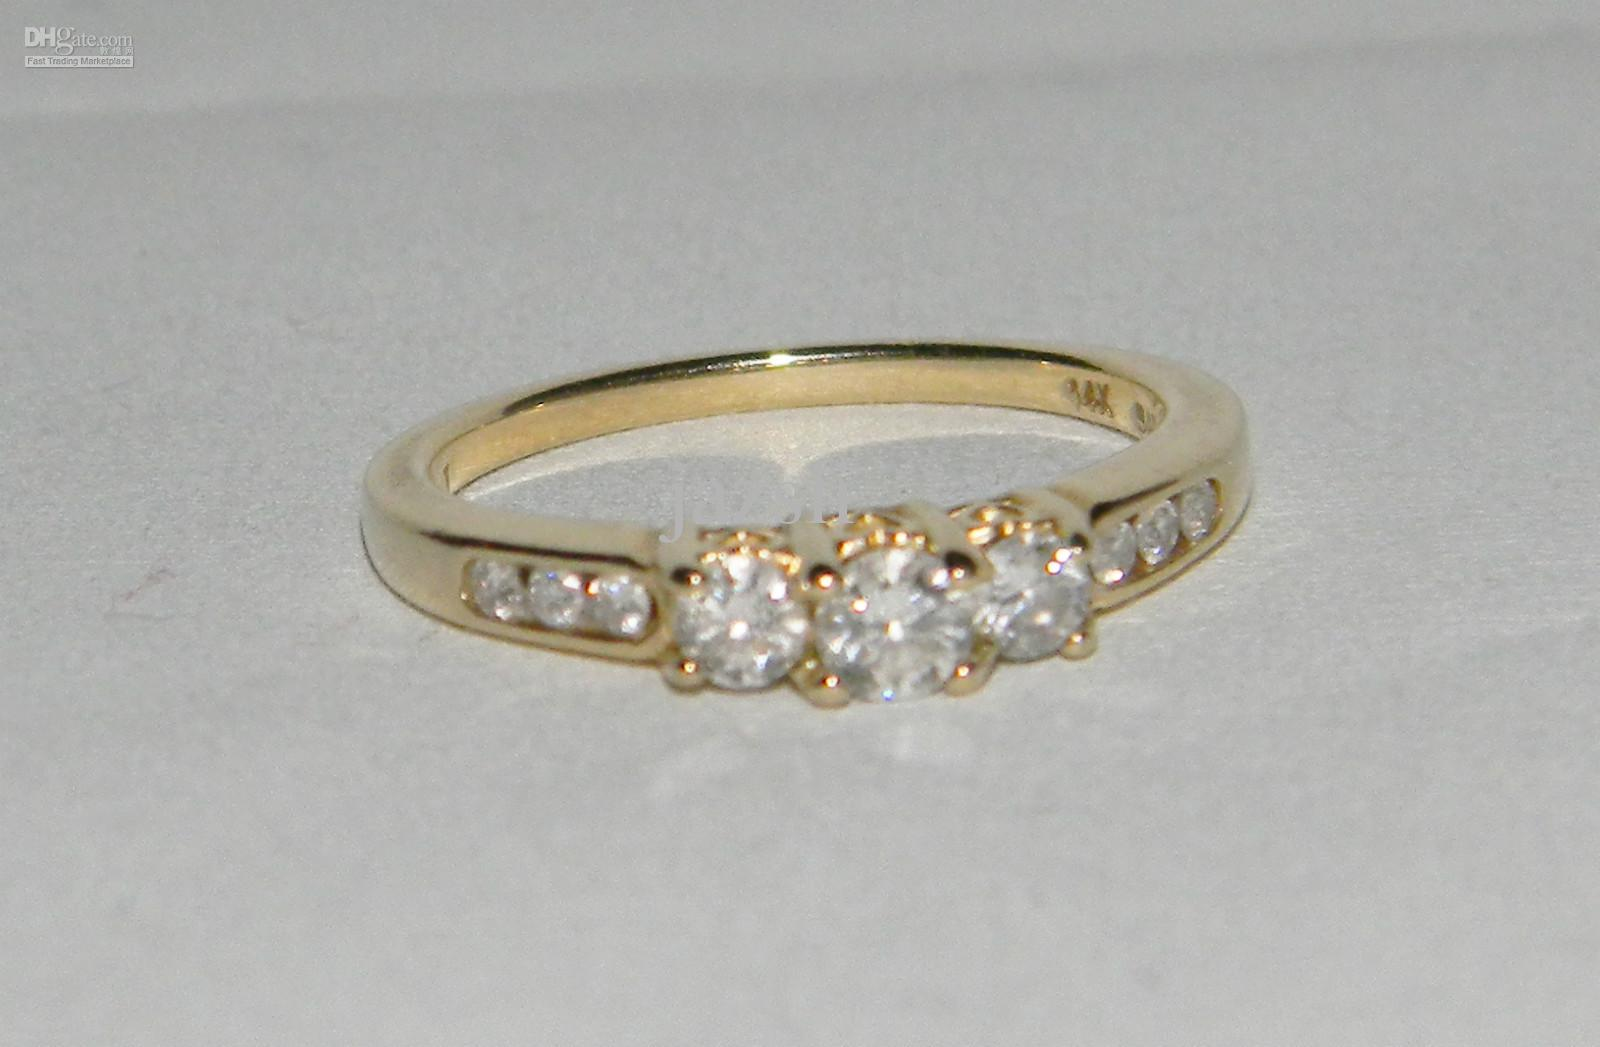 92932bc60f6e4 2019 Zales PAST PRESENT FUTURE 14K Yellow Gold 0.5 TCW Round Cut Diamond  Ring Size 7 **** From Jazsli, $55.63 | DHgate.Com